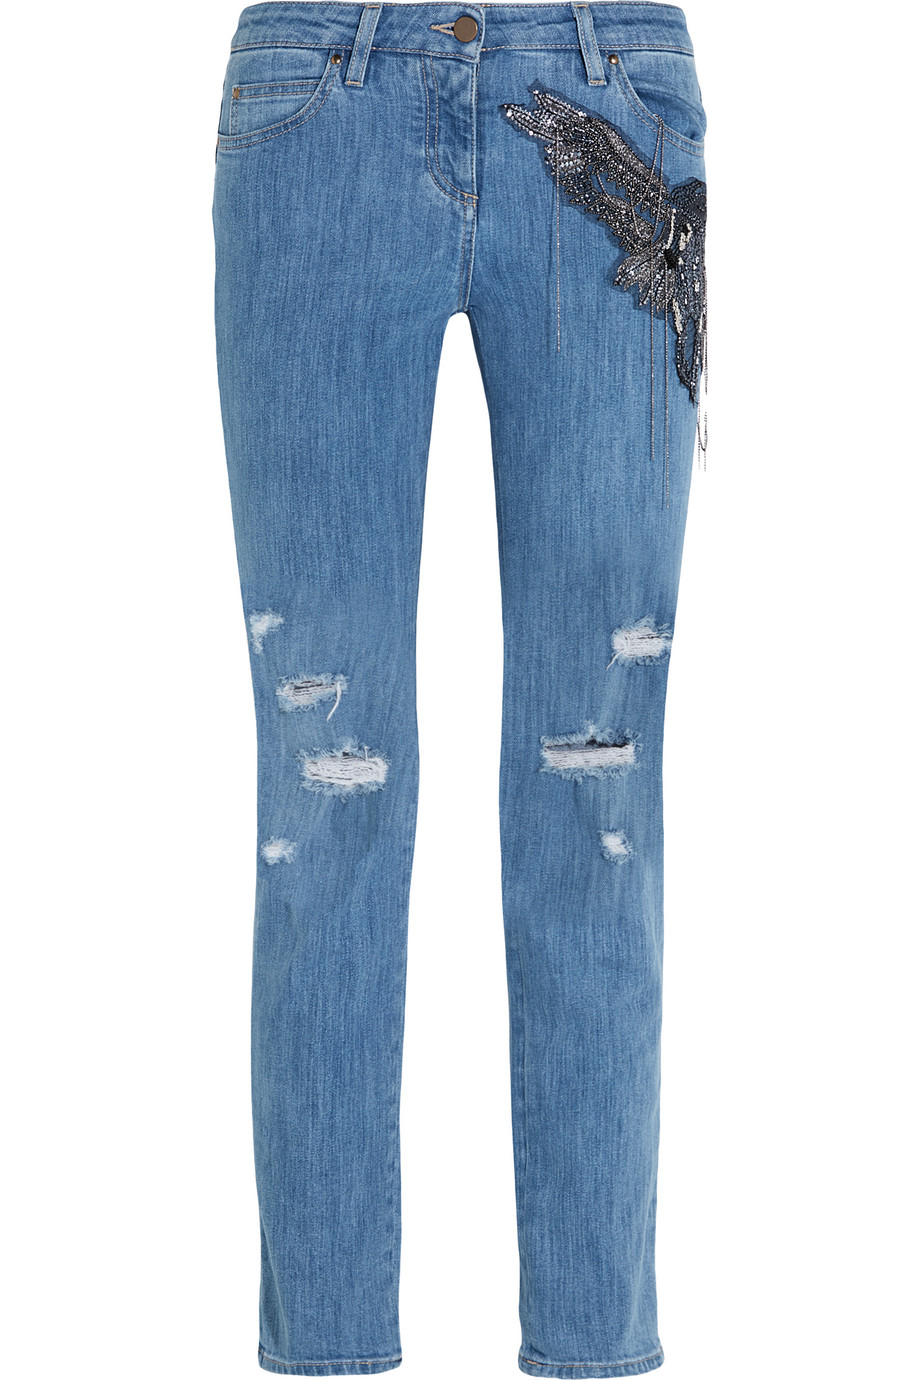 Roberto Cavalli Distressed Embellished Silk-Appliquéd Mid-Rise Straight-Leg Jeans, Mid Denim, Women's, Size: 46